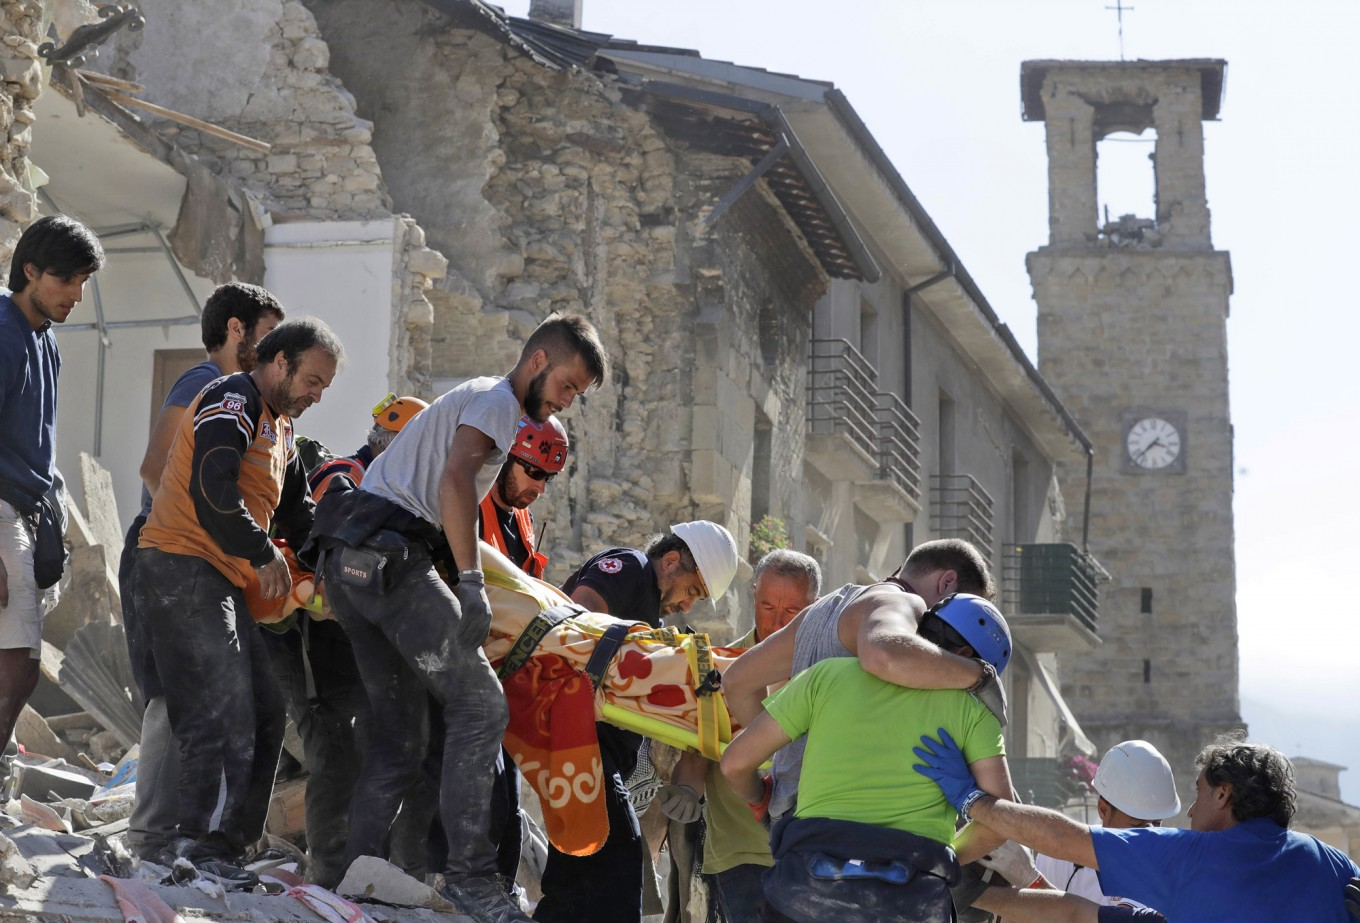 A victim is carried on a stretcher from a collapsed building after an earthquake, in Amatrice, central Italy, Wednesday, Aug. 24, 2016. A devastating earthquake rocked central Italy early Wednesday, collapsing homes on top of residents as they slept. At least 23 people were reported dead in three hard-hit towns where rescue crews raced to dig survivors out of the rubble,  but the toll was expected to rise as crews reached homes in more remote hamlets. AP Photo/Alessandra Tarantino